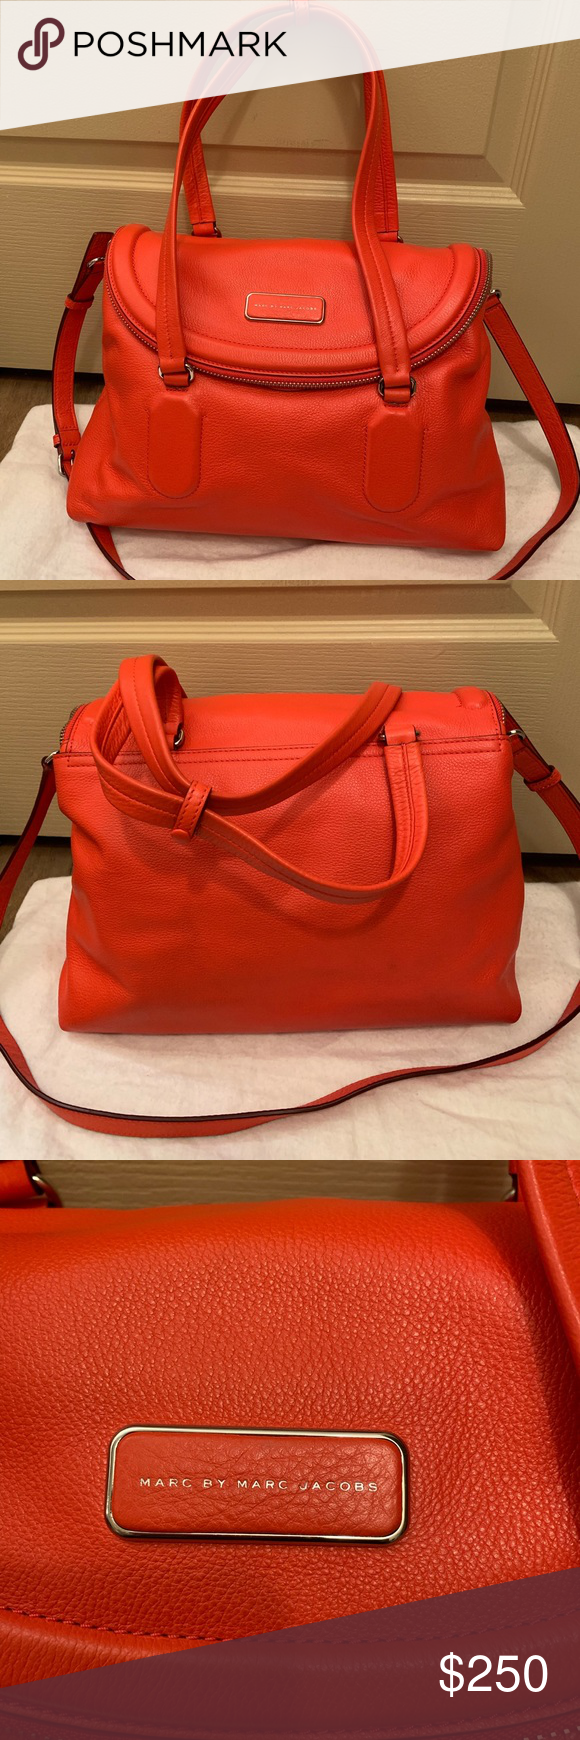 c16ec1ccb1 Marc by Marc Jacobs Silicone Valley Satchel Like-new. Used handful of  times. Italian leather. See last pic for details. No trades/mod pics.